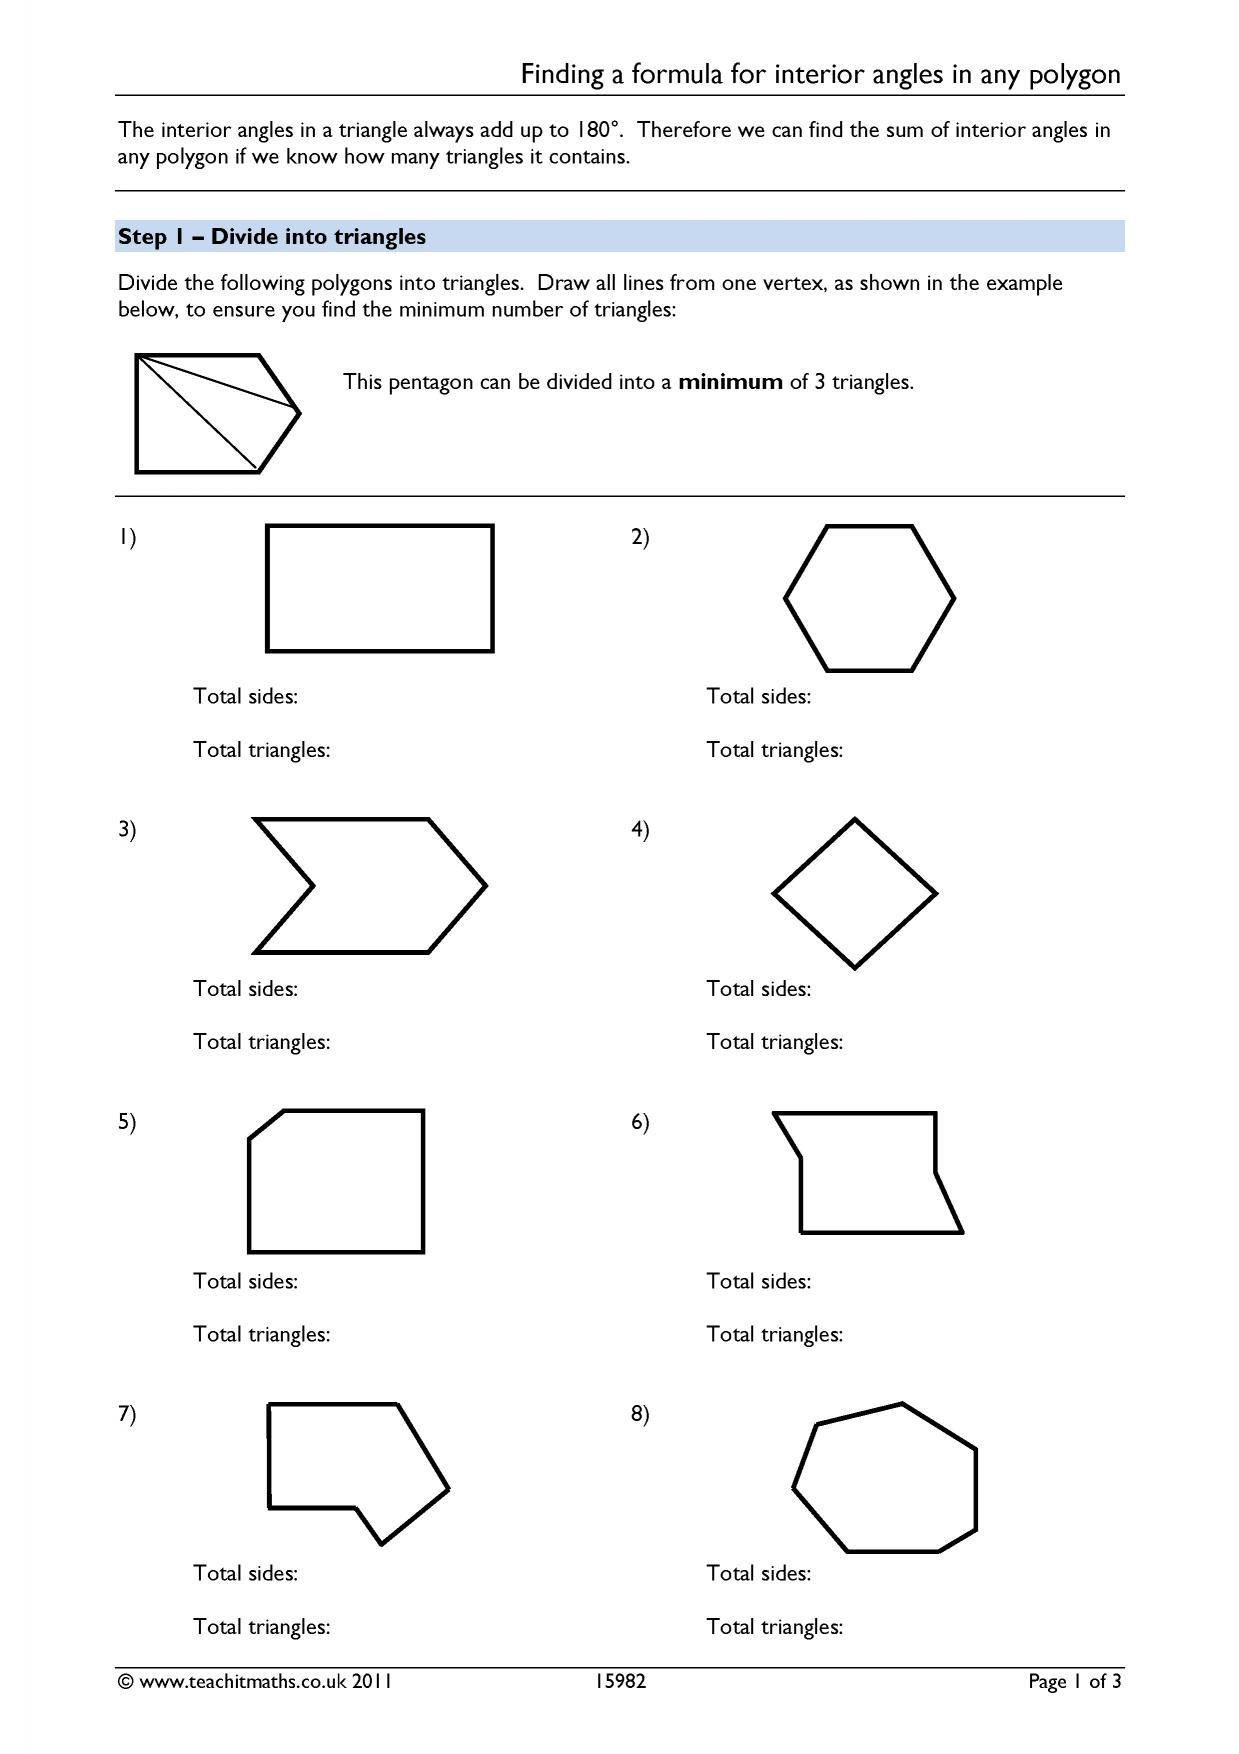 Polygon and Angles Worksheet Finding A formula for Interior Angles In Any Polygon